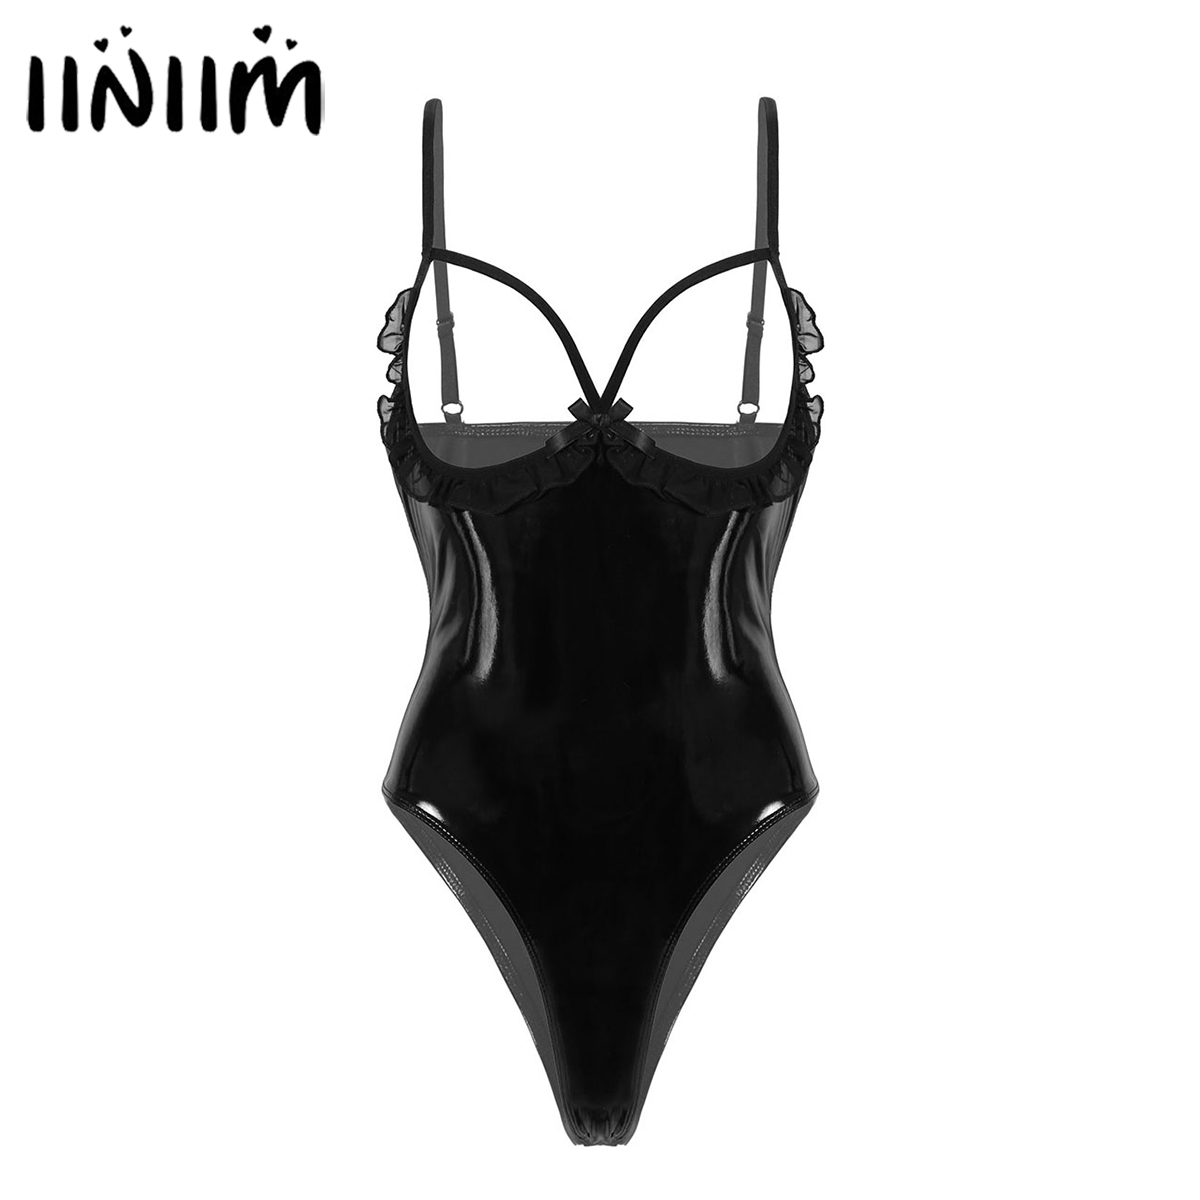 Womens Wetlook Latex Costumes Clubwear Leather Exotic Lingerie Babydoll Bodycon Open Cup Bras High Cut Thong Teddy Sexy Bodysuit